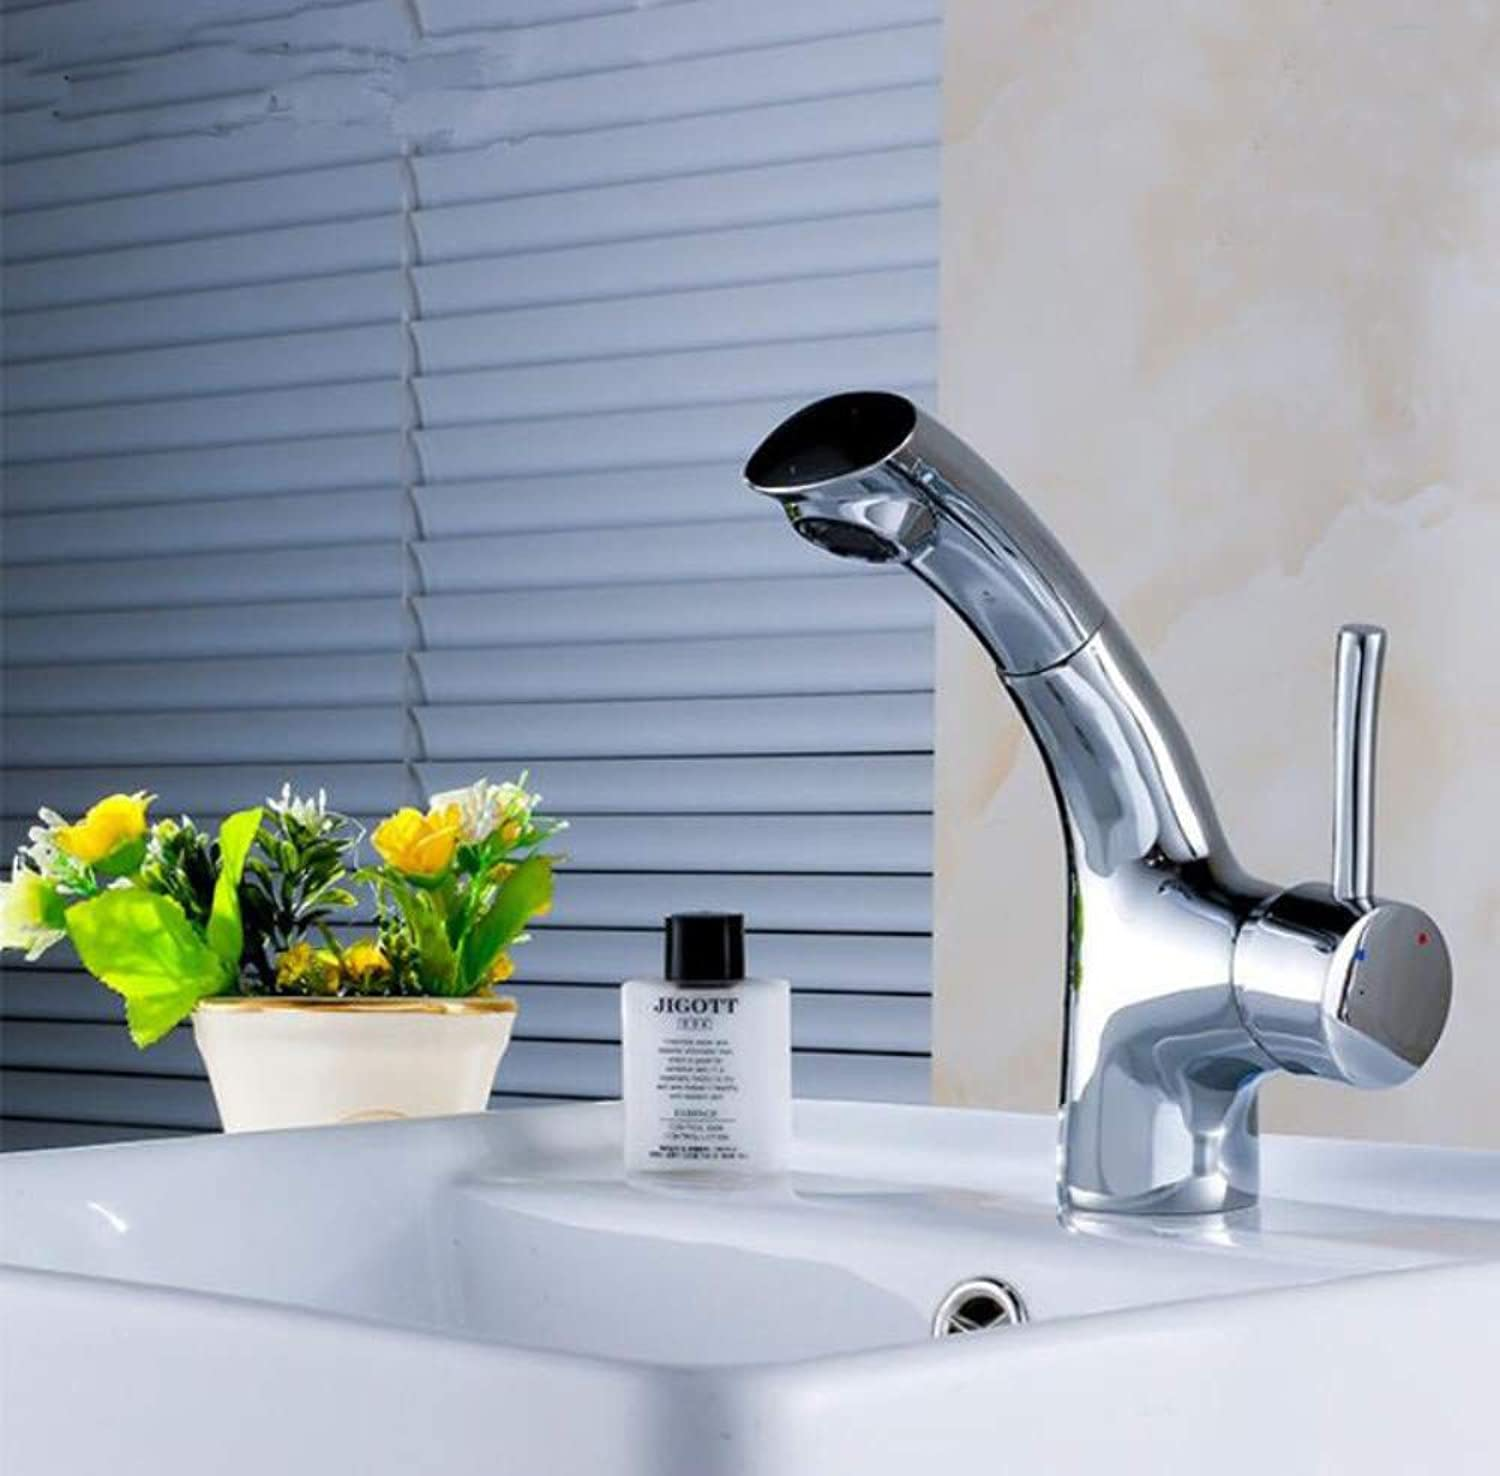 Bathroom Sink Tap Countertop Basin Pull Head Faucet Telescopic Multi - Functional Hot and Cold Water Faucet